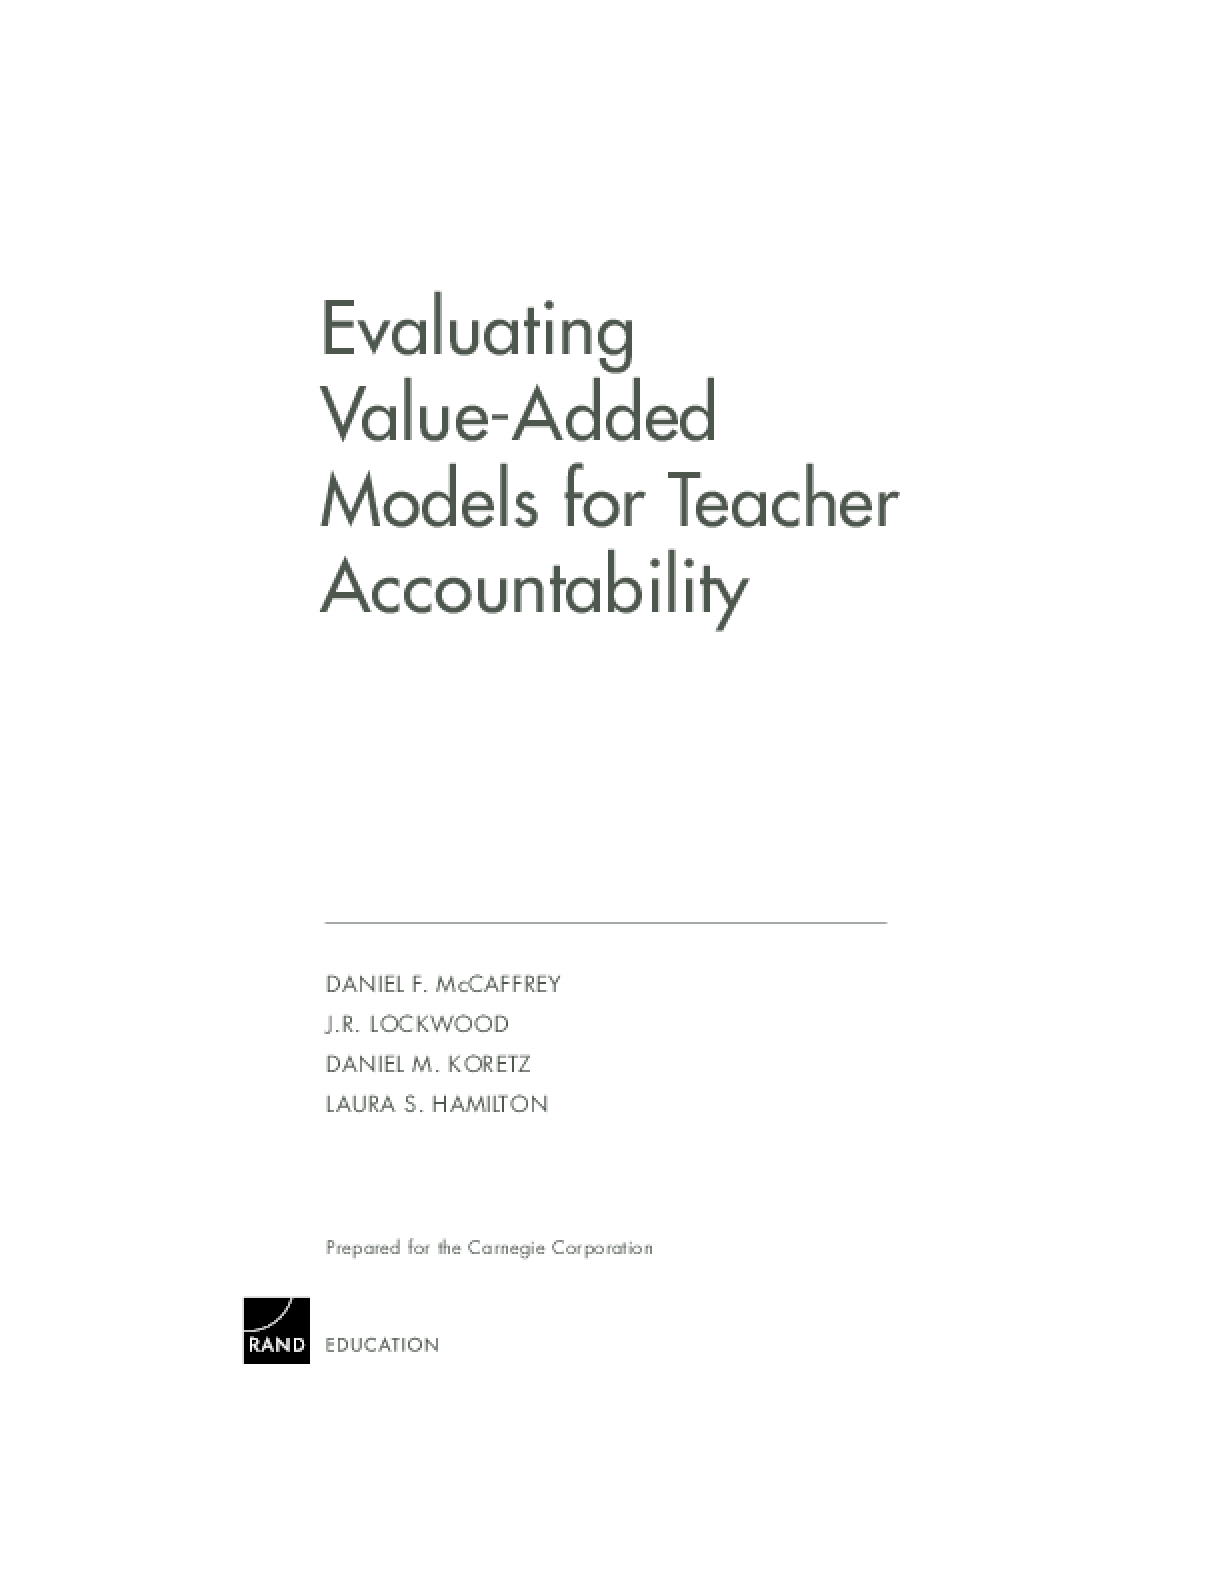 Evaluating Value-Added Models for Teacher Accountability